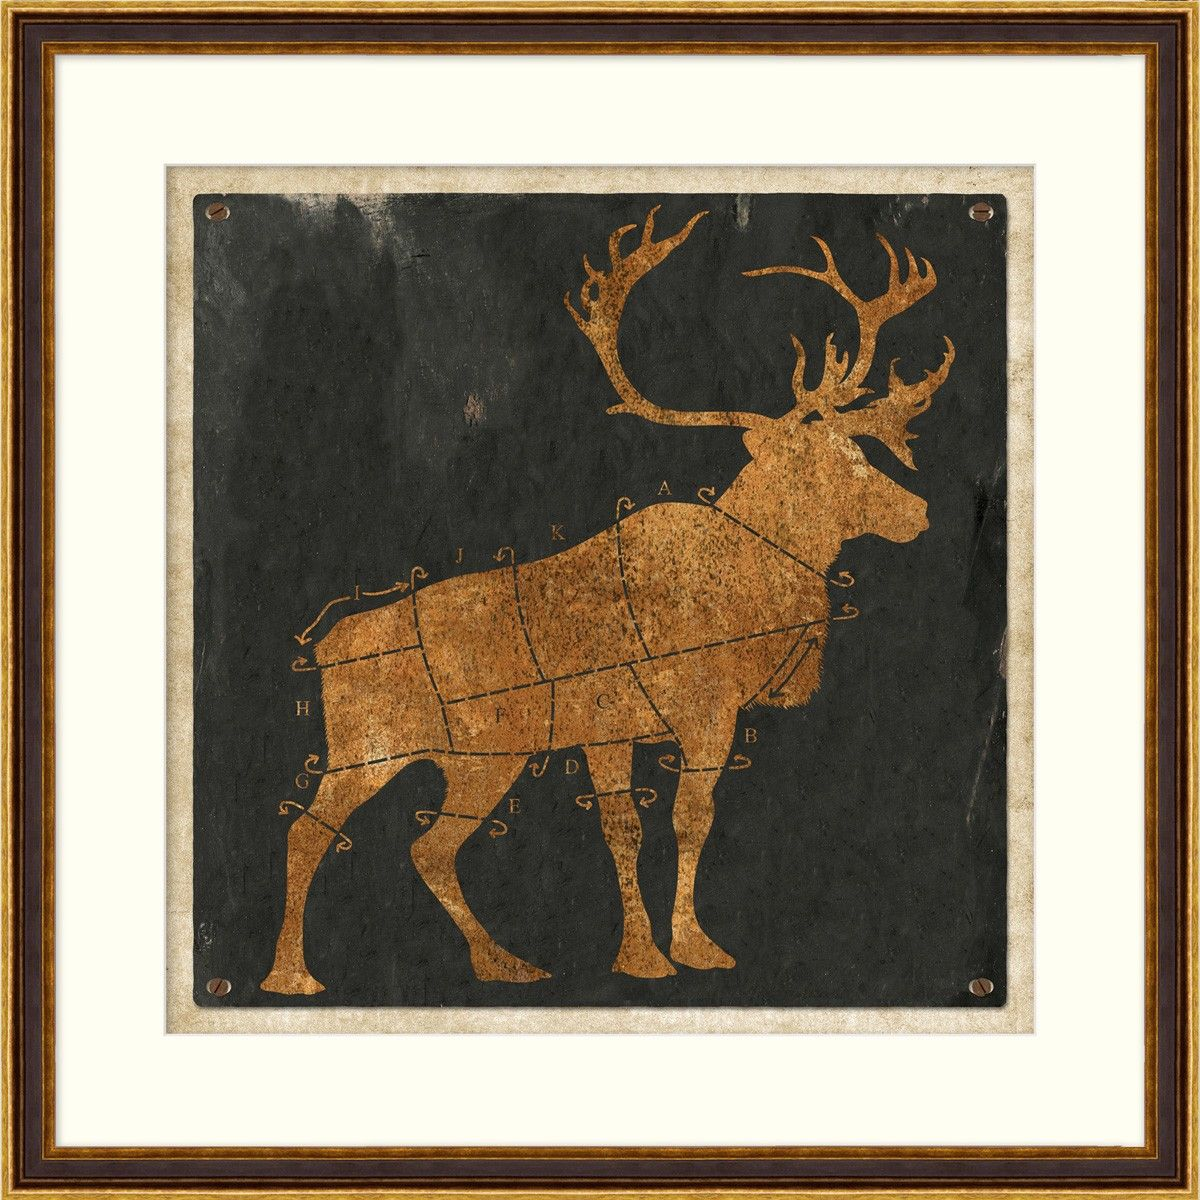 14658 Stag Diagram 1 - Game - Animals - Our Product W 32.5 H 32.5 #WildGame $370